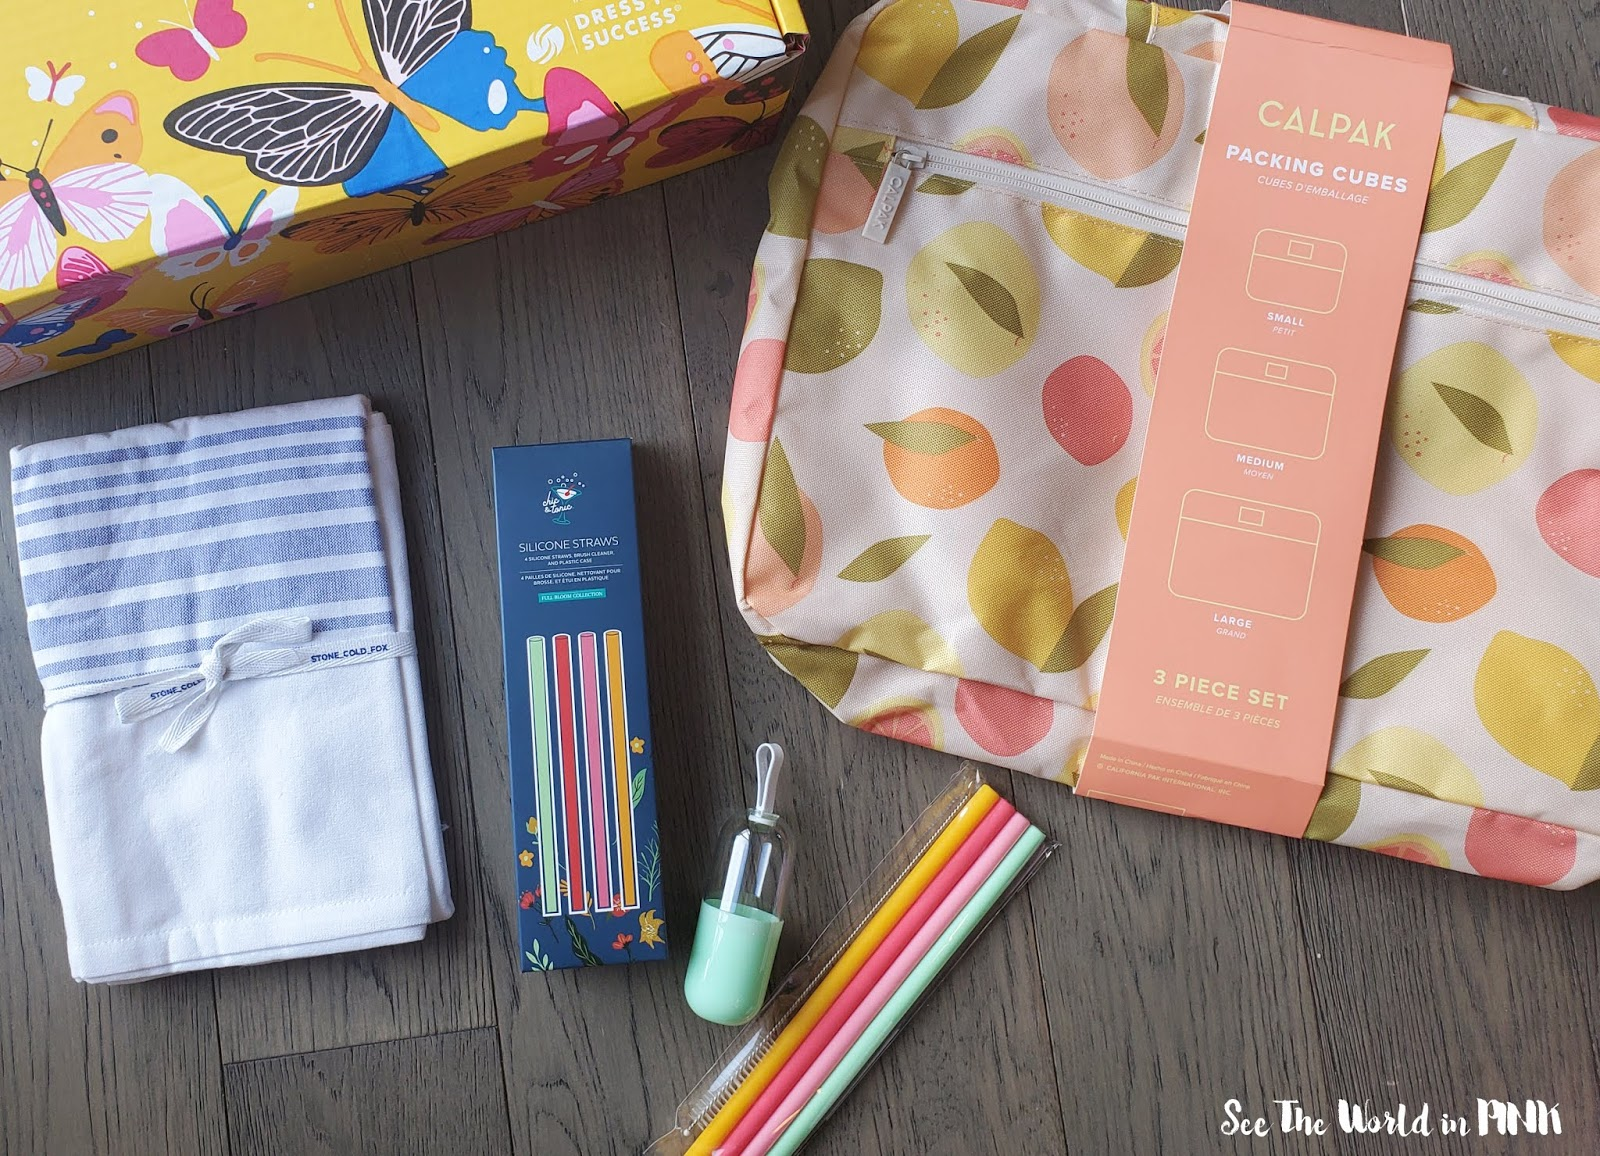 Spring 2020 FabFitFun - Lifestyle Subscription Unboxing